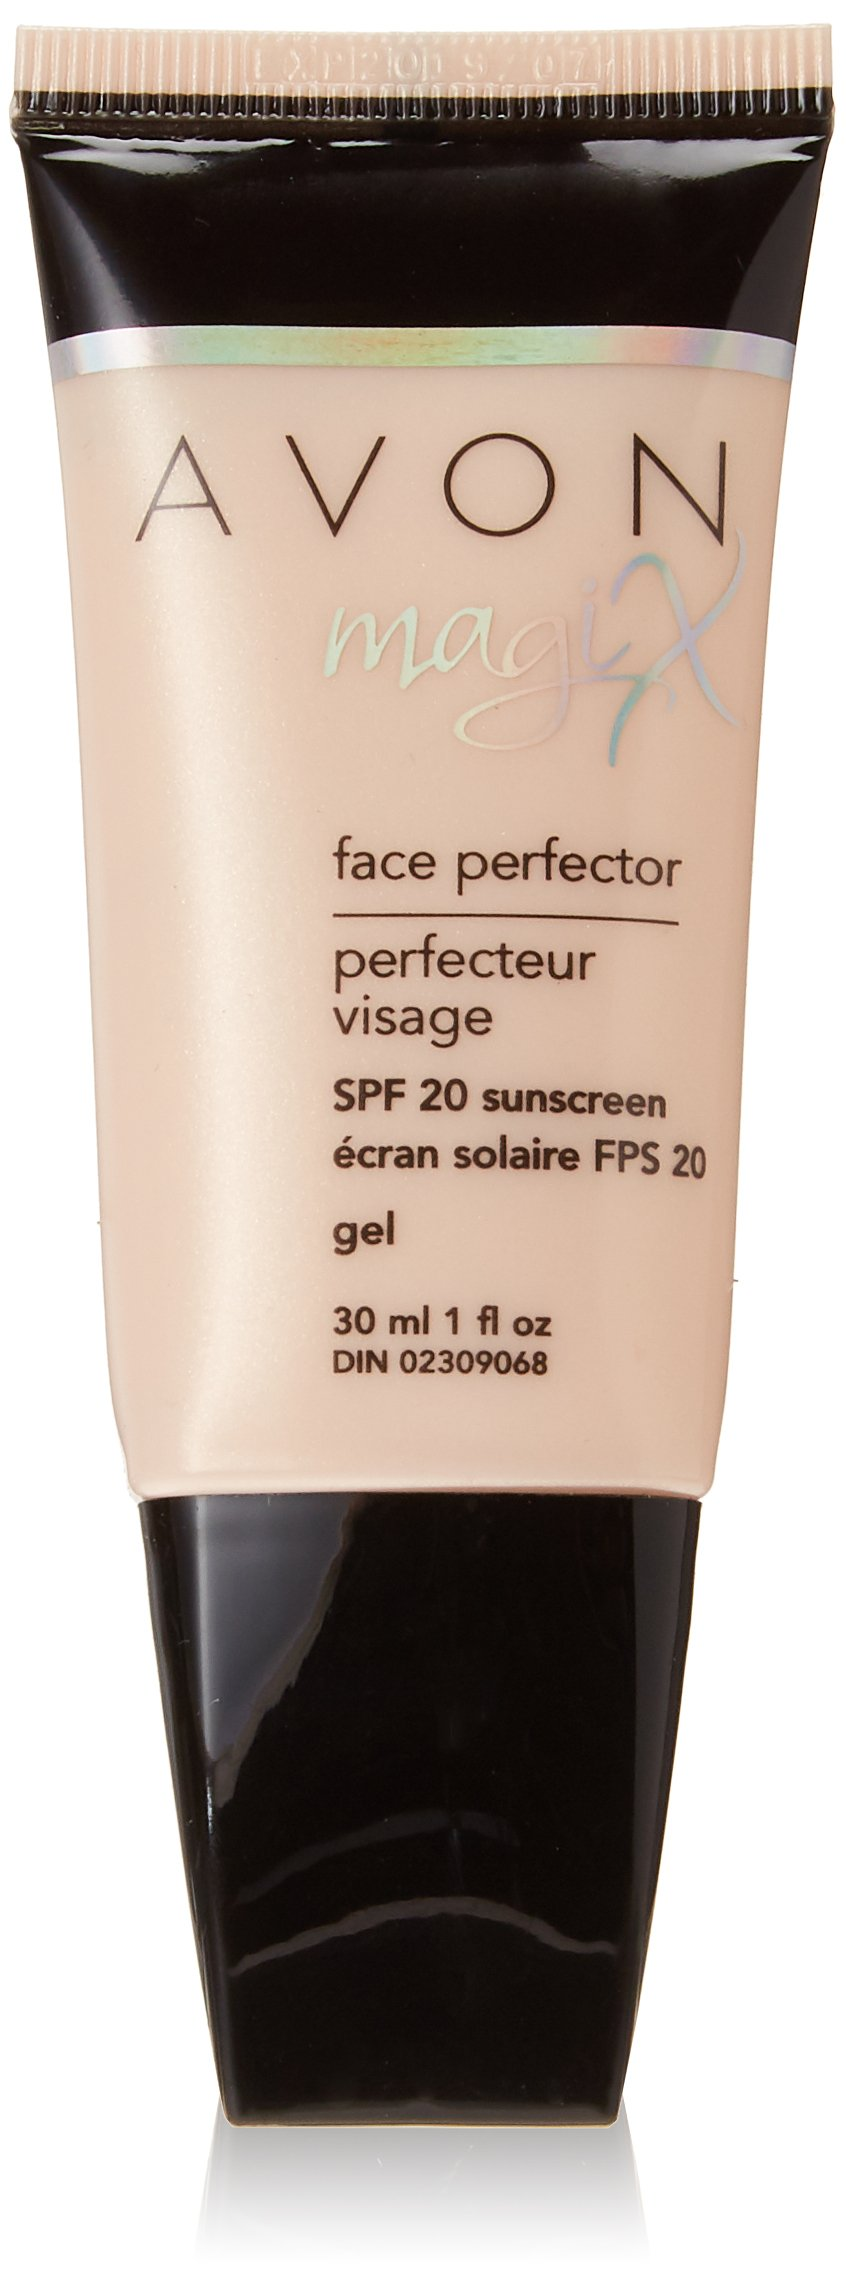 Avon Face Perfector Spf 20 Sunscreen, New Packet by AVON (Image #1)